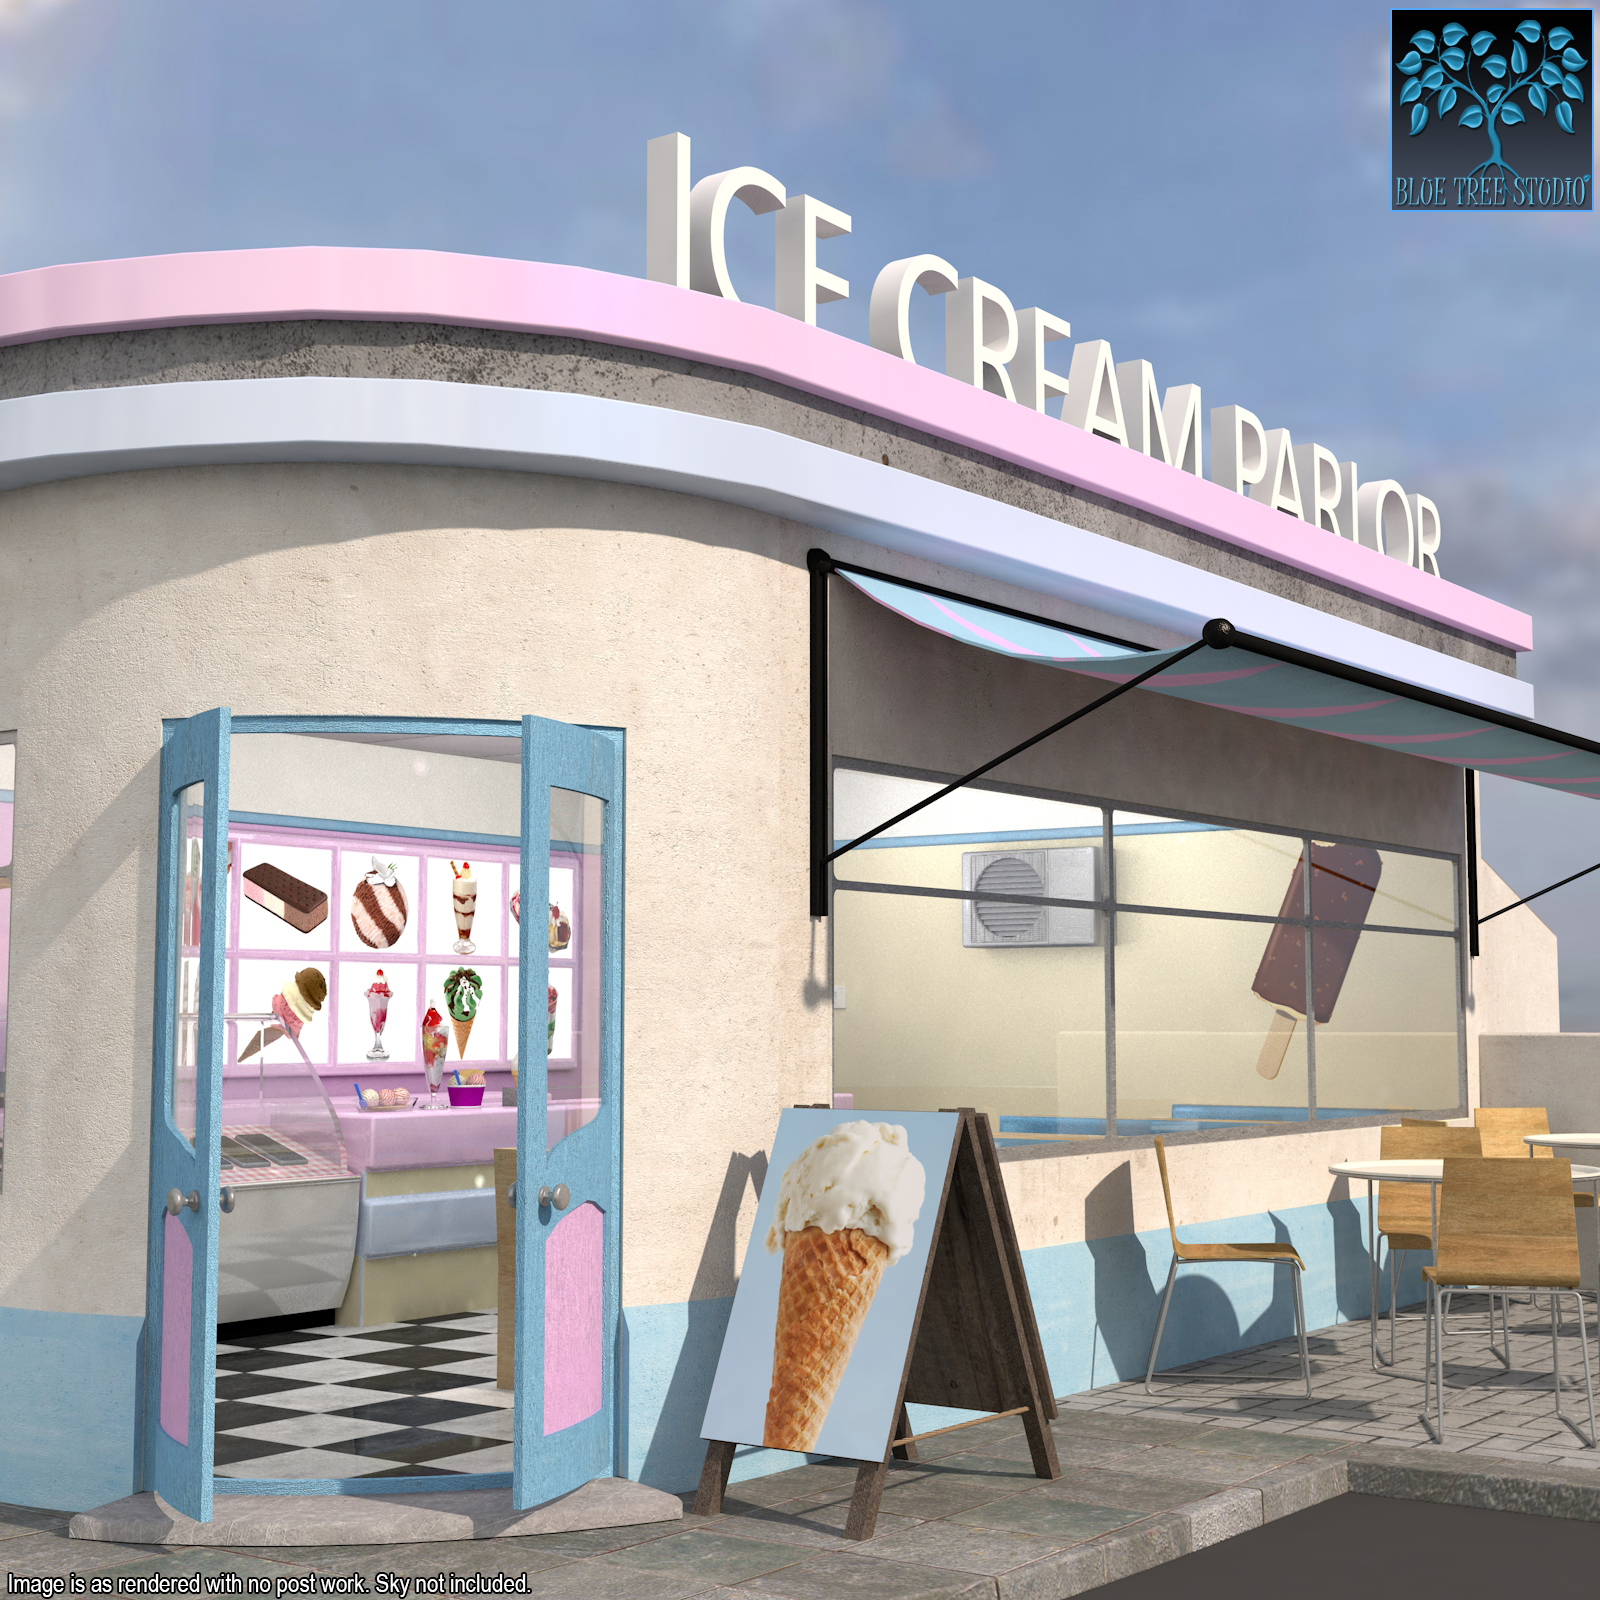 Ice Cream Parlor by BlueTreeStudio